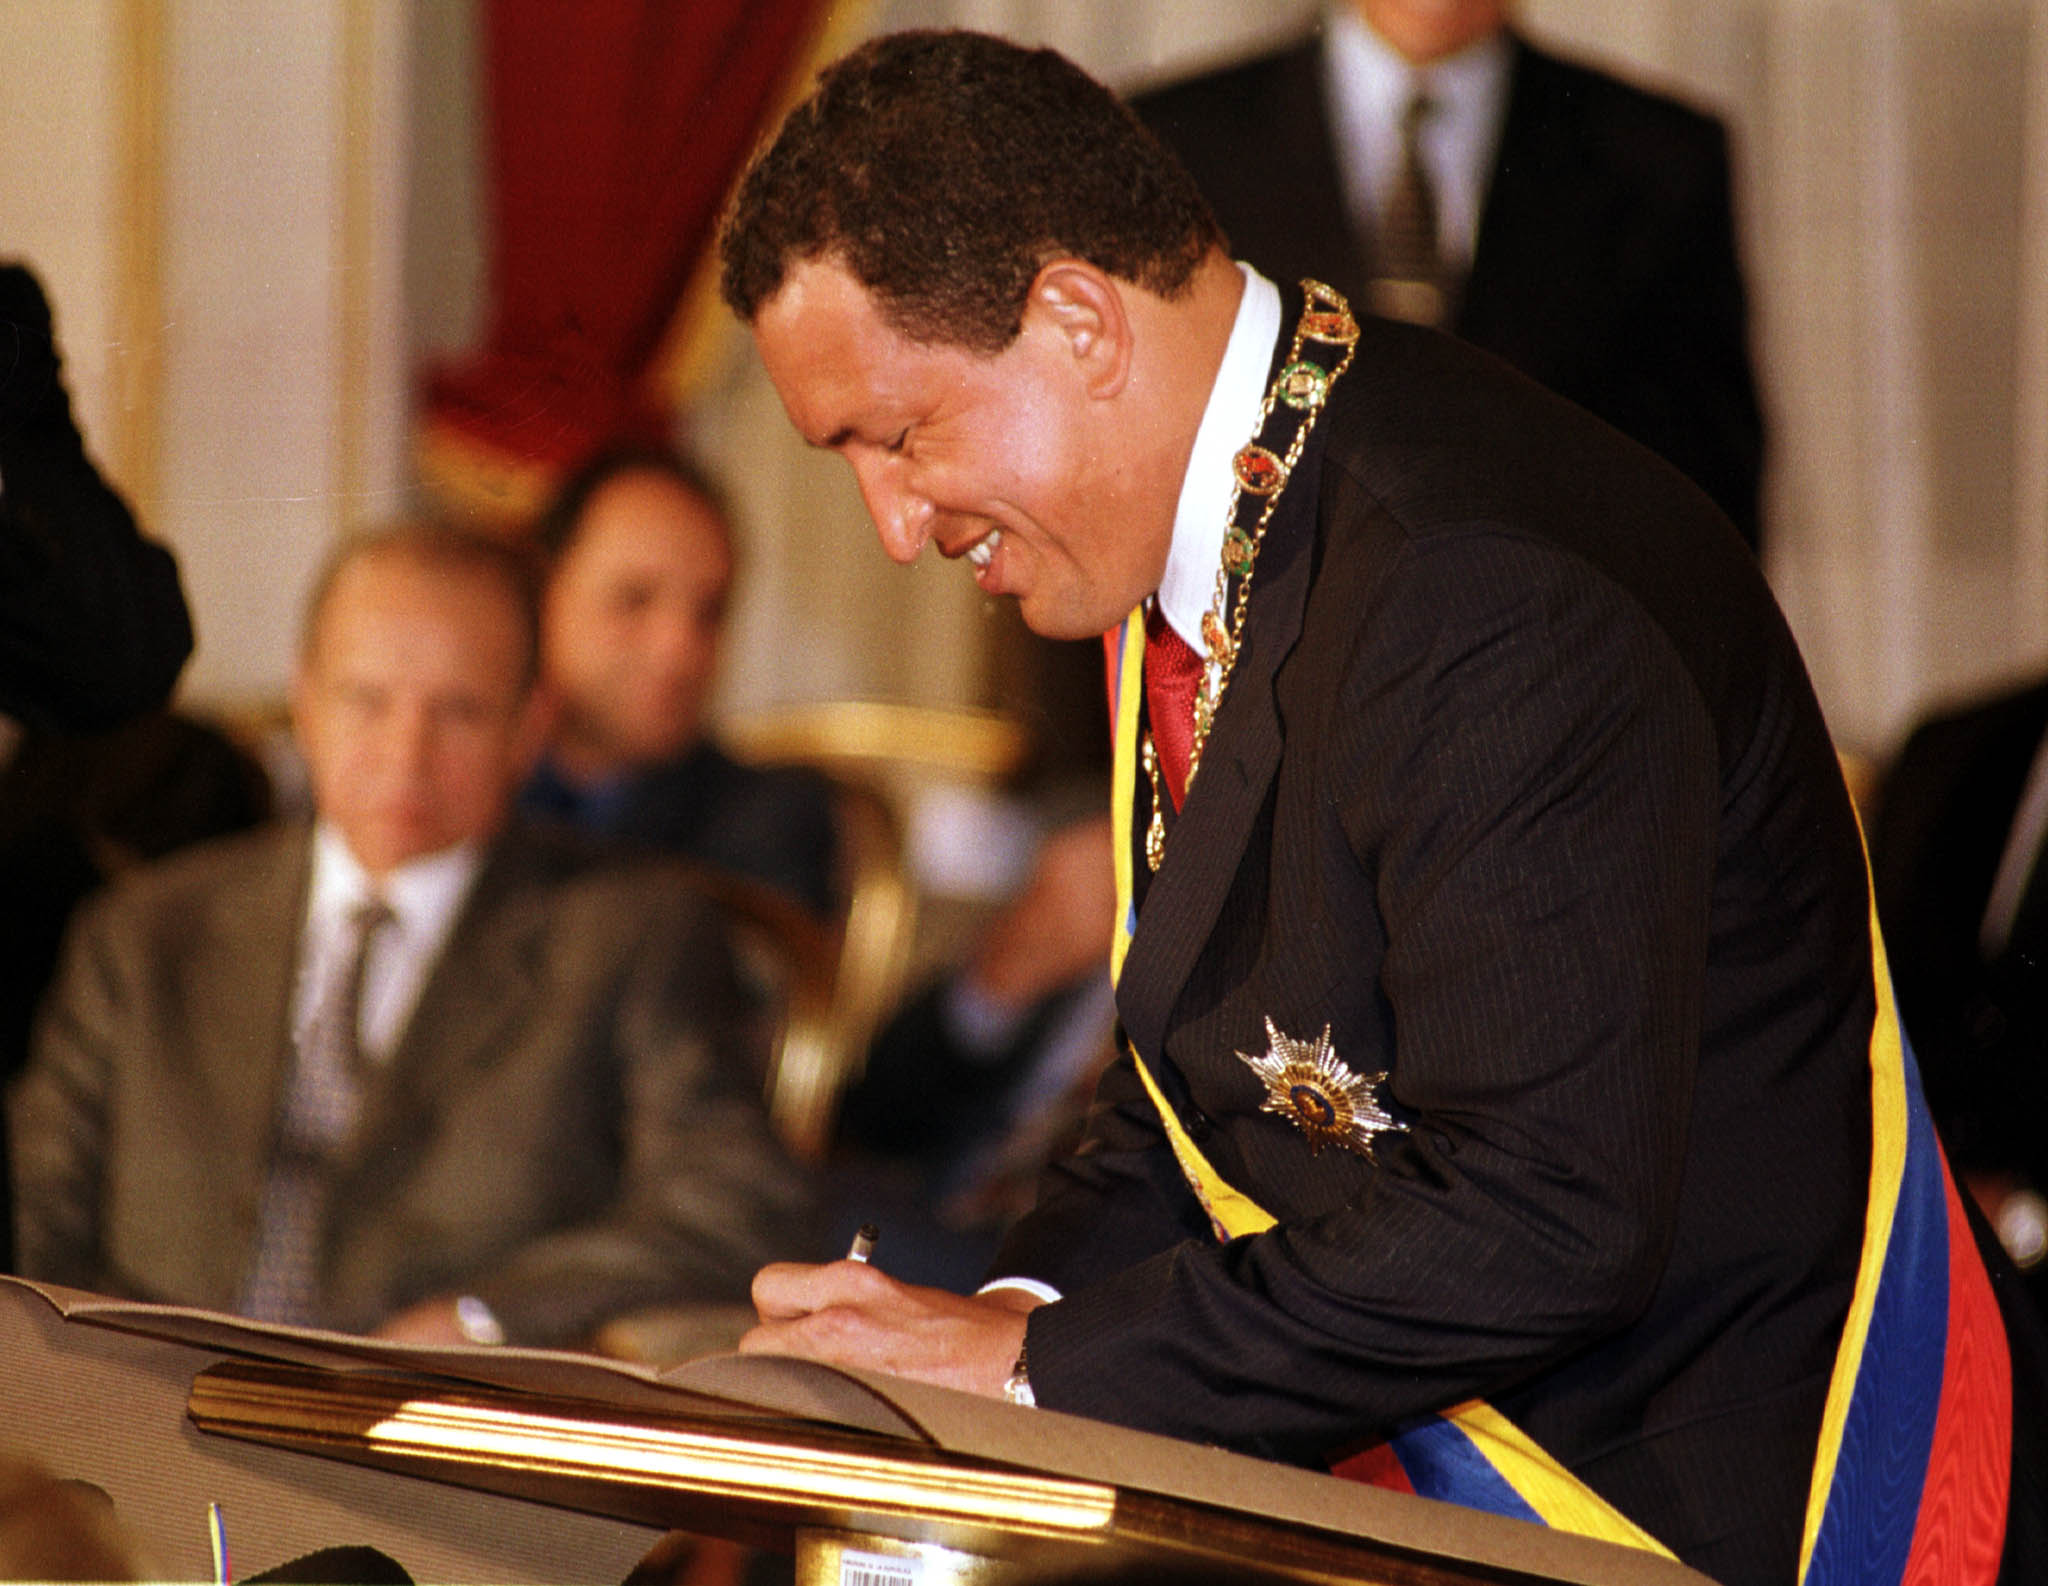 Chavez signing a document.